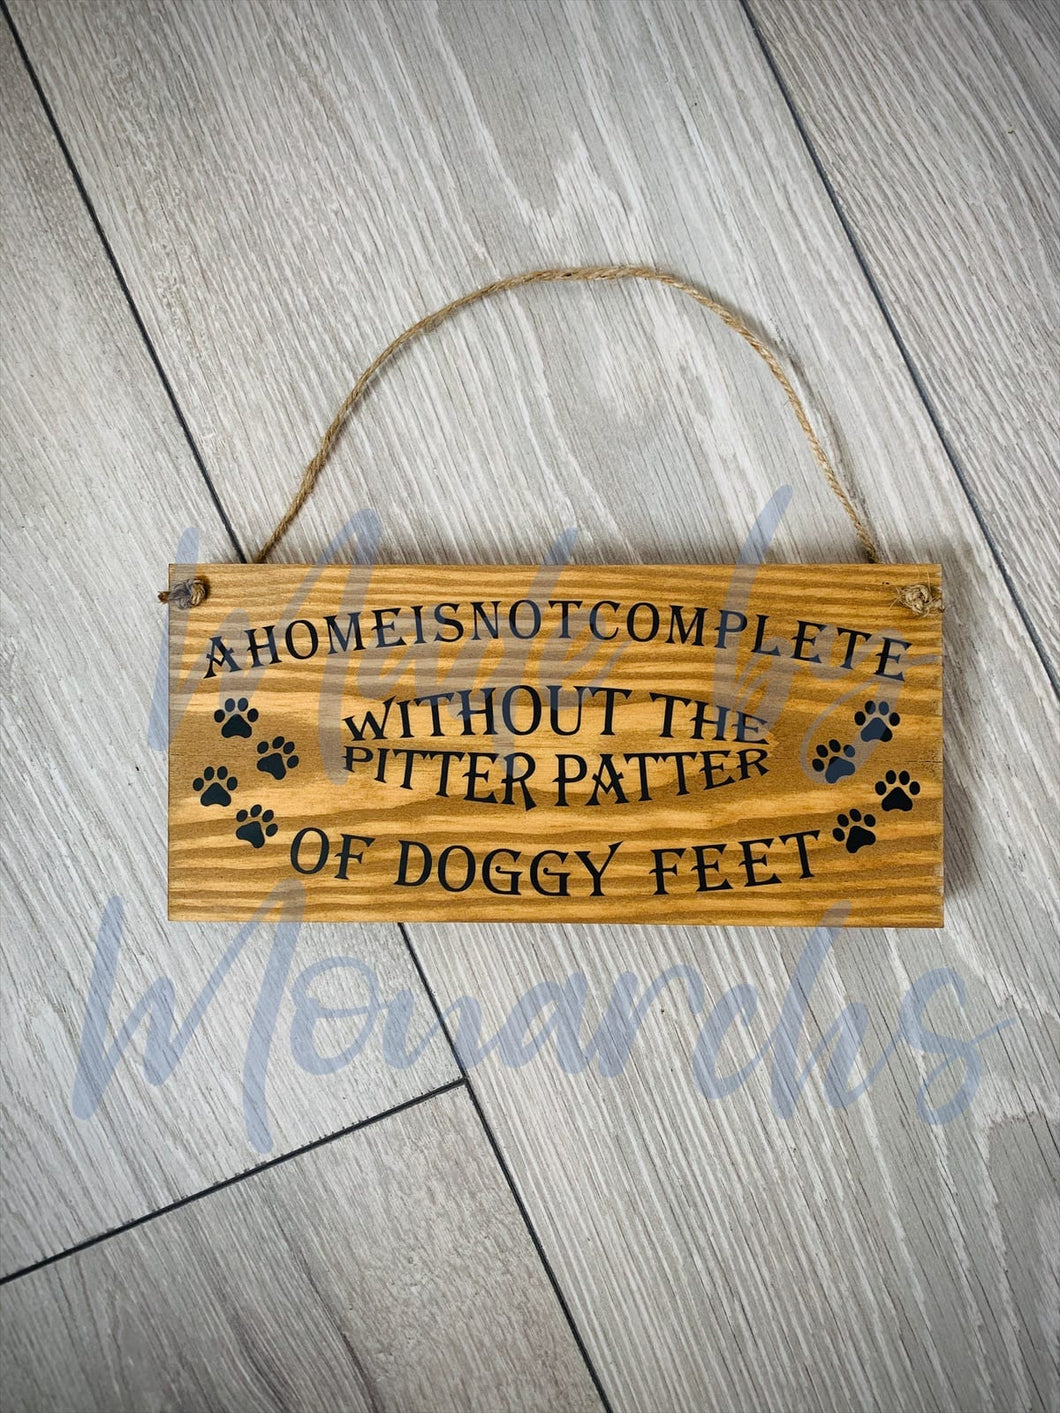 'A Home Is Not Complete Without The Pitter Patter' Wooden Sign